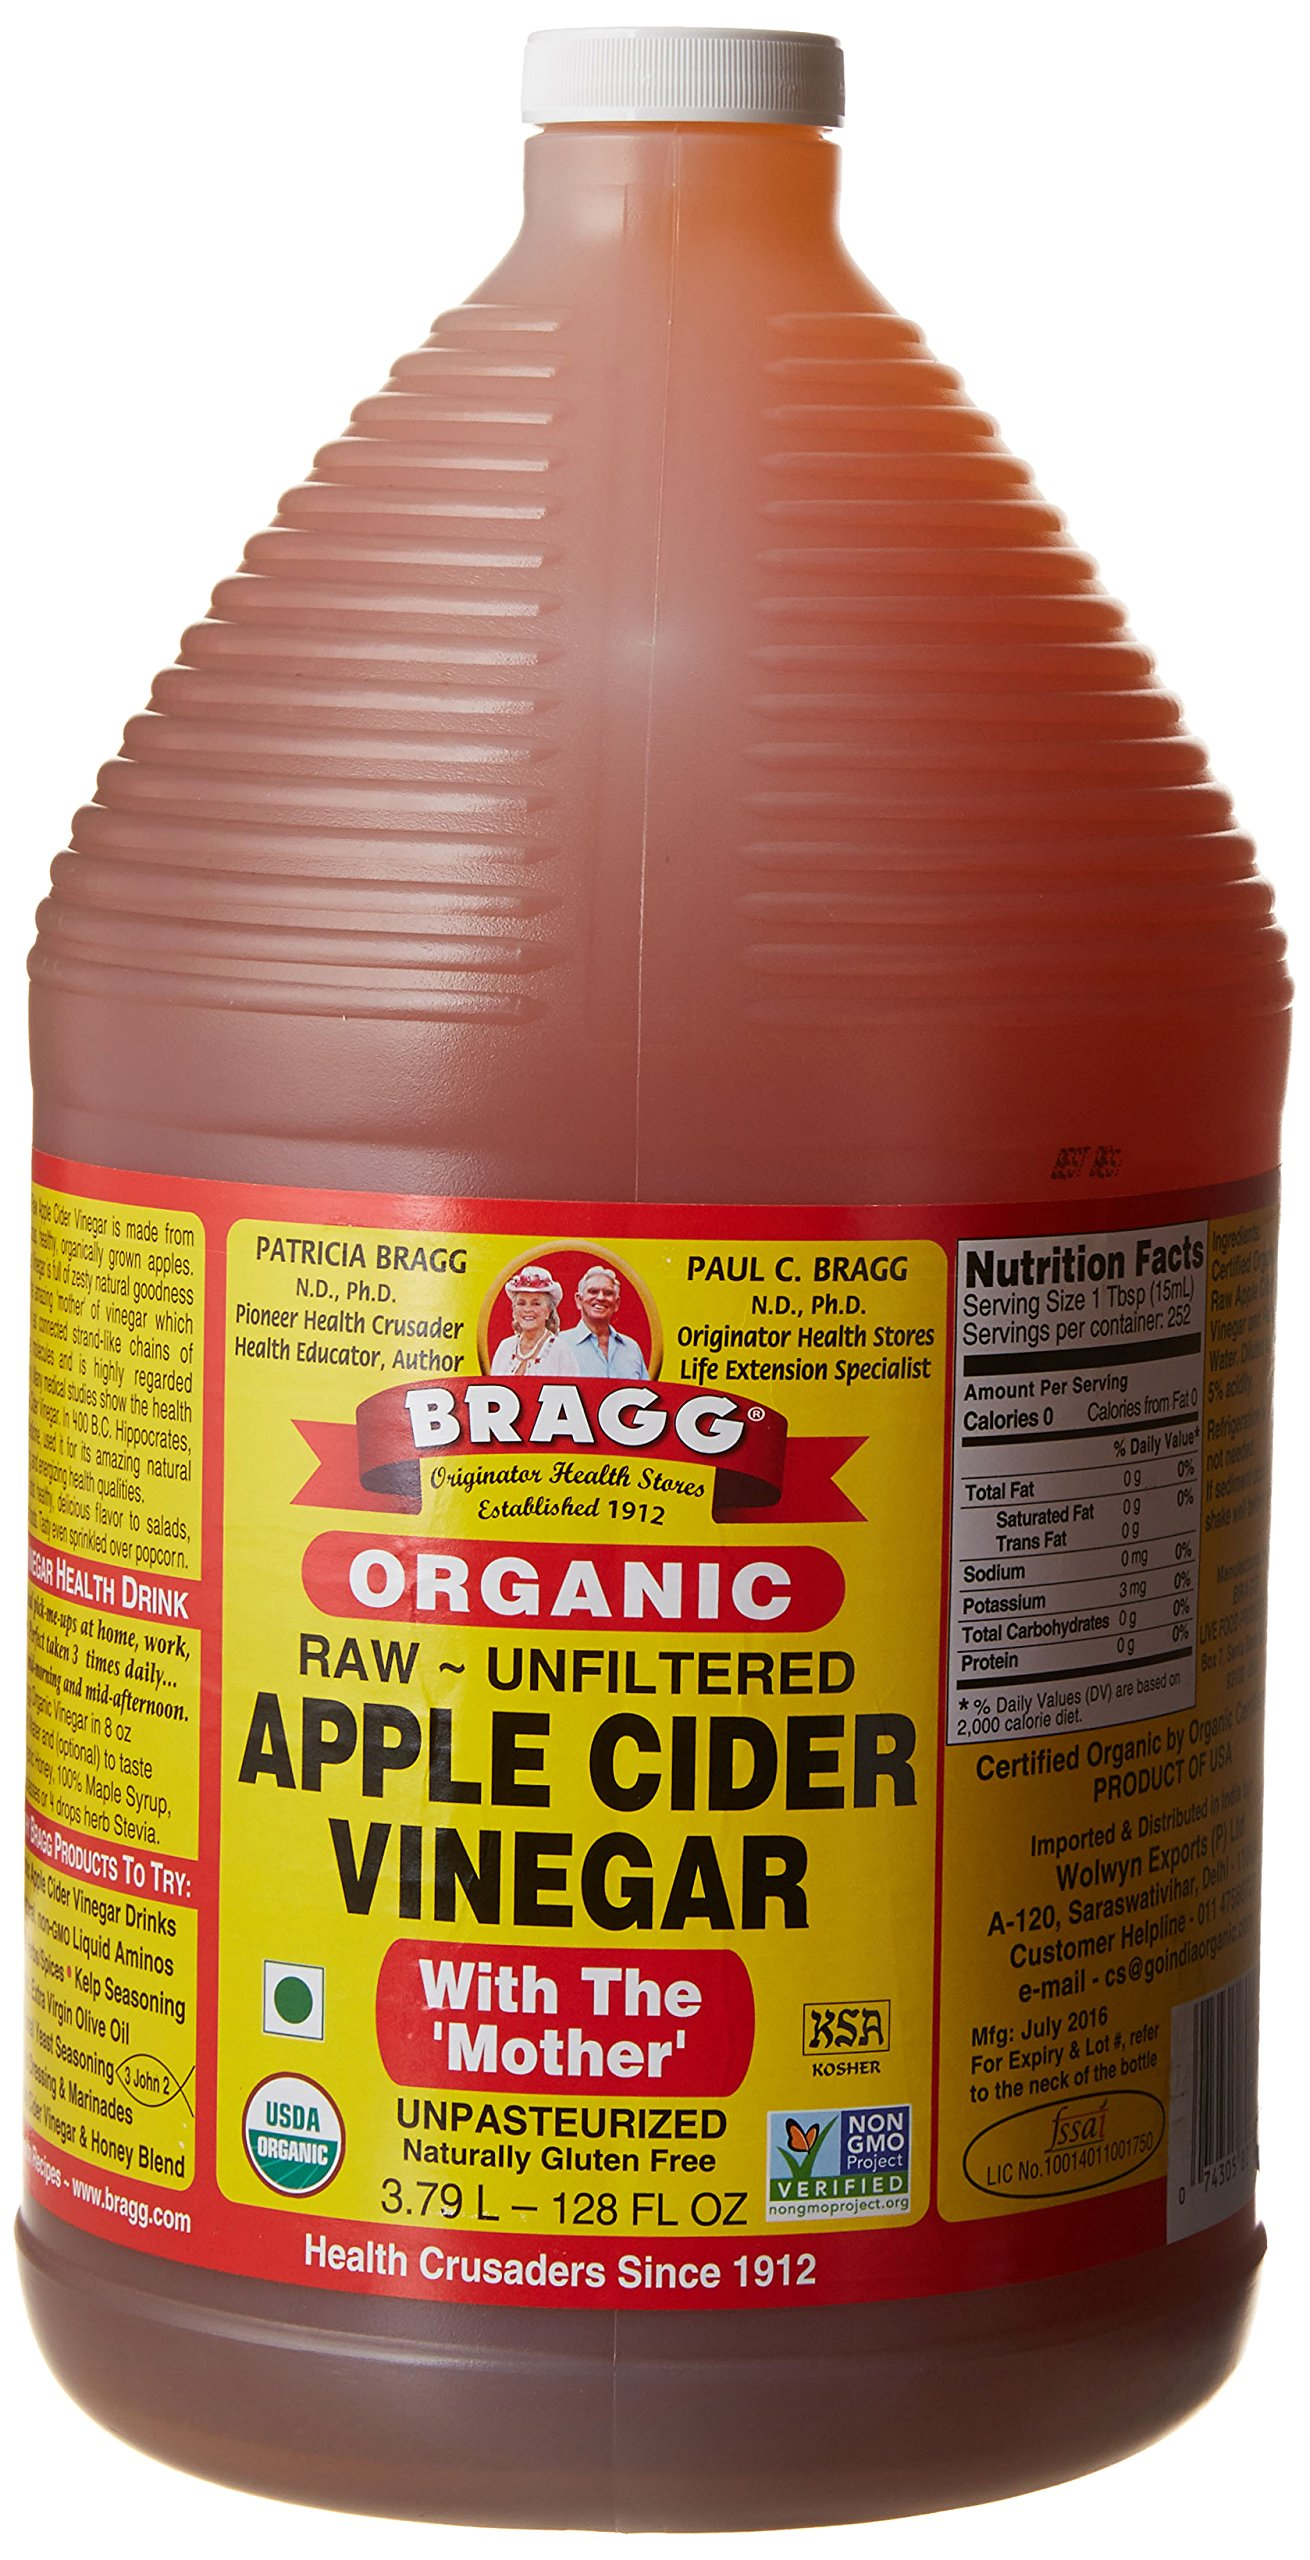 Bragg Apple Cider Vinegar, 1 gal/128 oz.